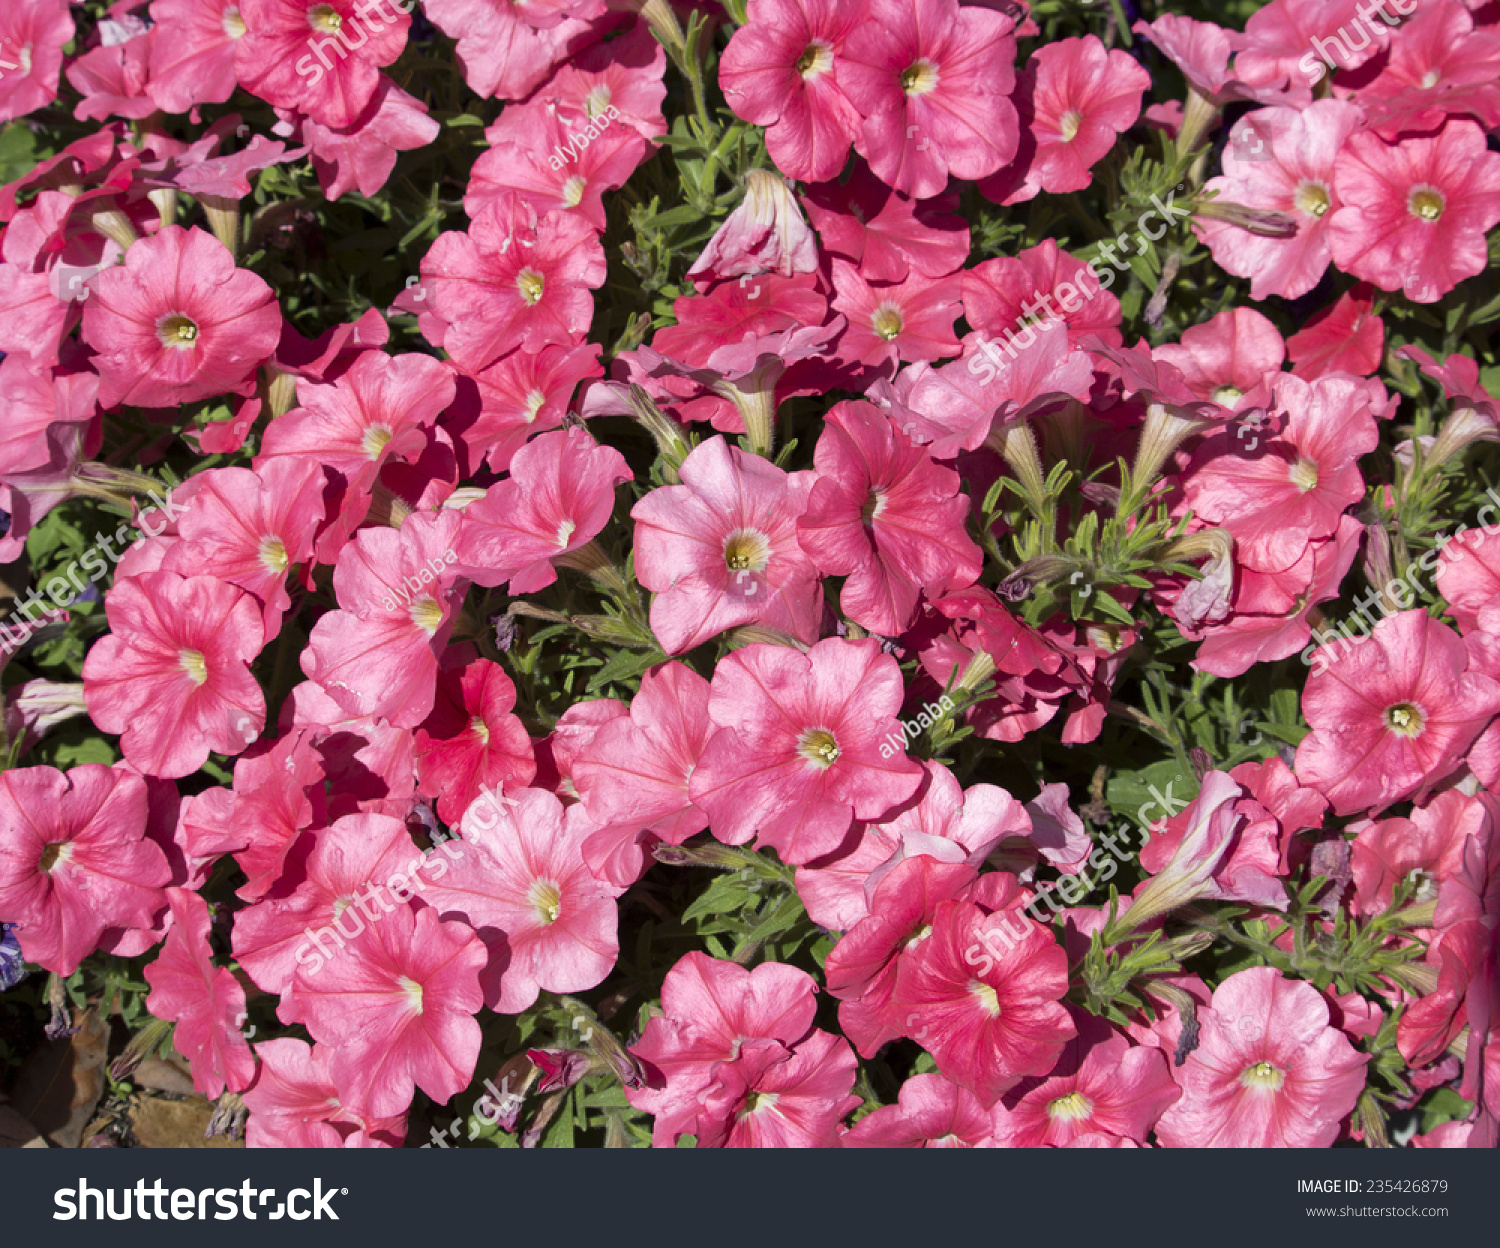 Cheerful large single pink flowers annual stock photo edit now cheerful large single pink flowers of annual petunias family solanaceae blooming in a massed garden bed izmirmasajfo